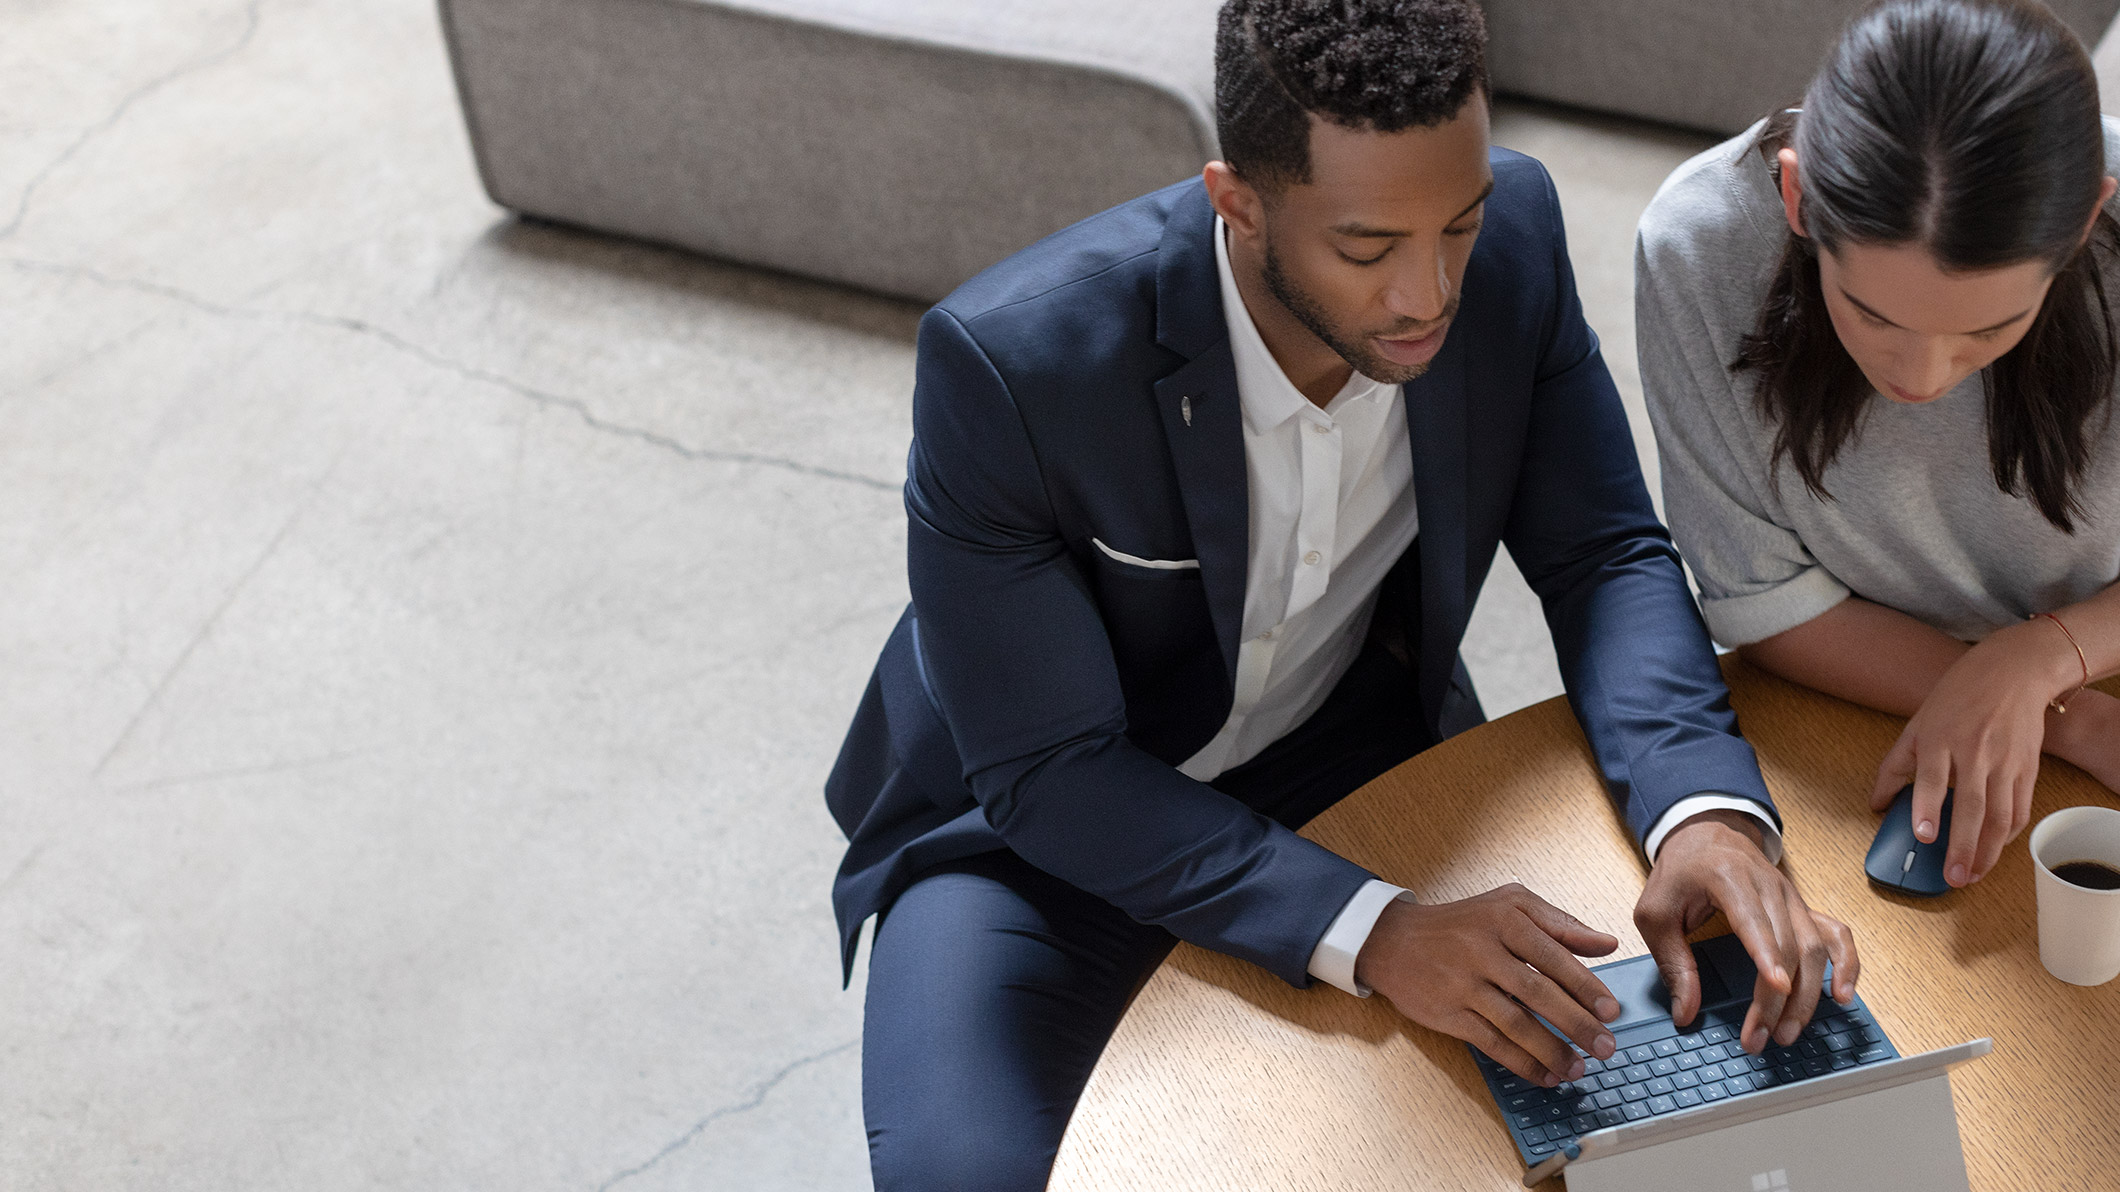 business professionals sitting at a conference table viewing information on a laptop